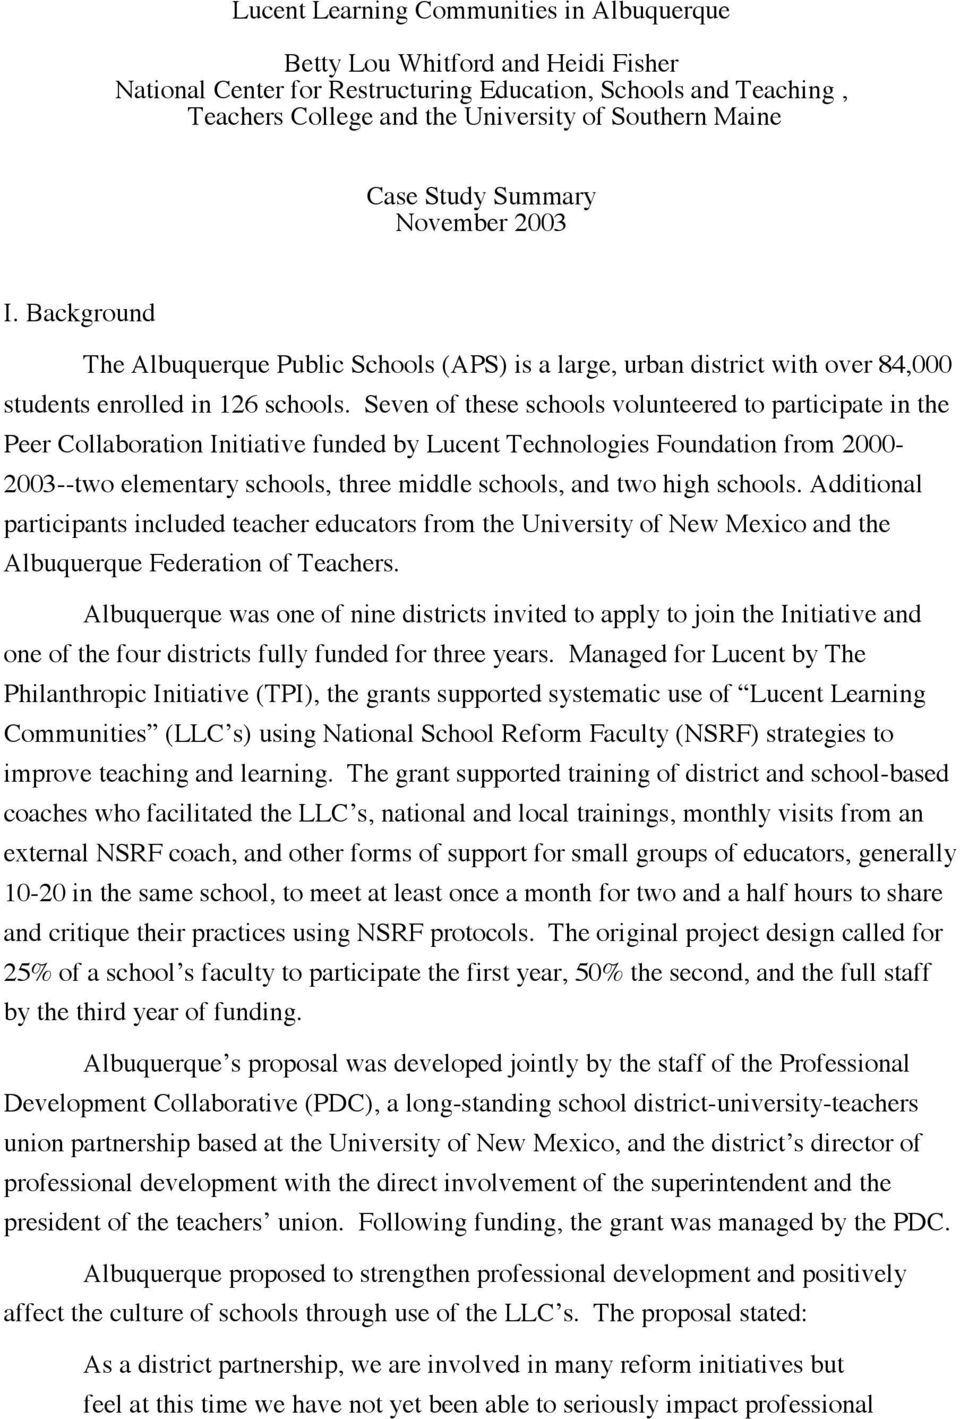 Seven of these schools volunteered to participate in the Peer Collaboration Initiative funded by Lucent Technologies Foundation from 2000-2003--two elementary schools, three middle schools, and two